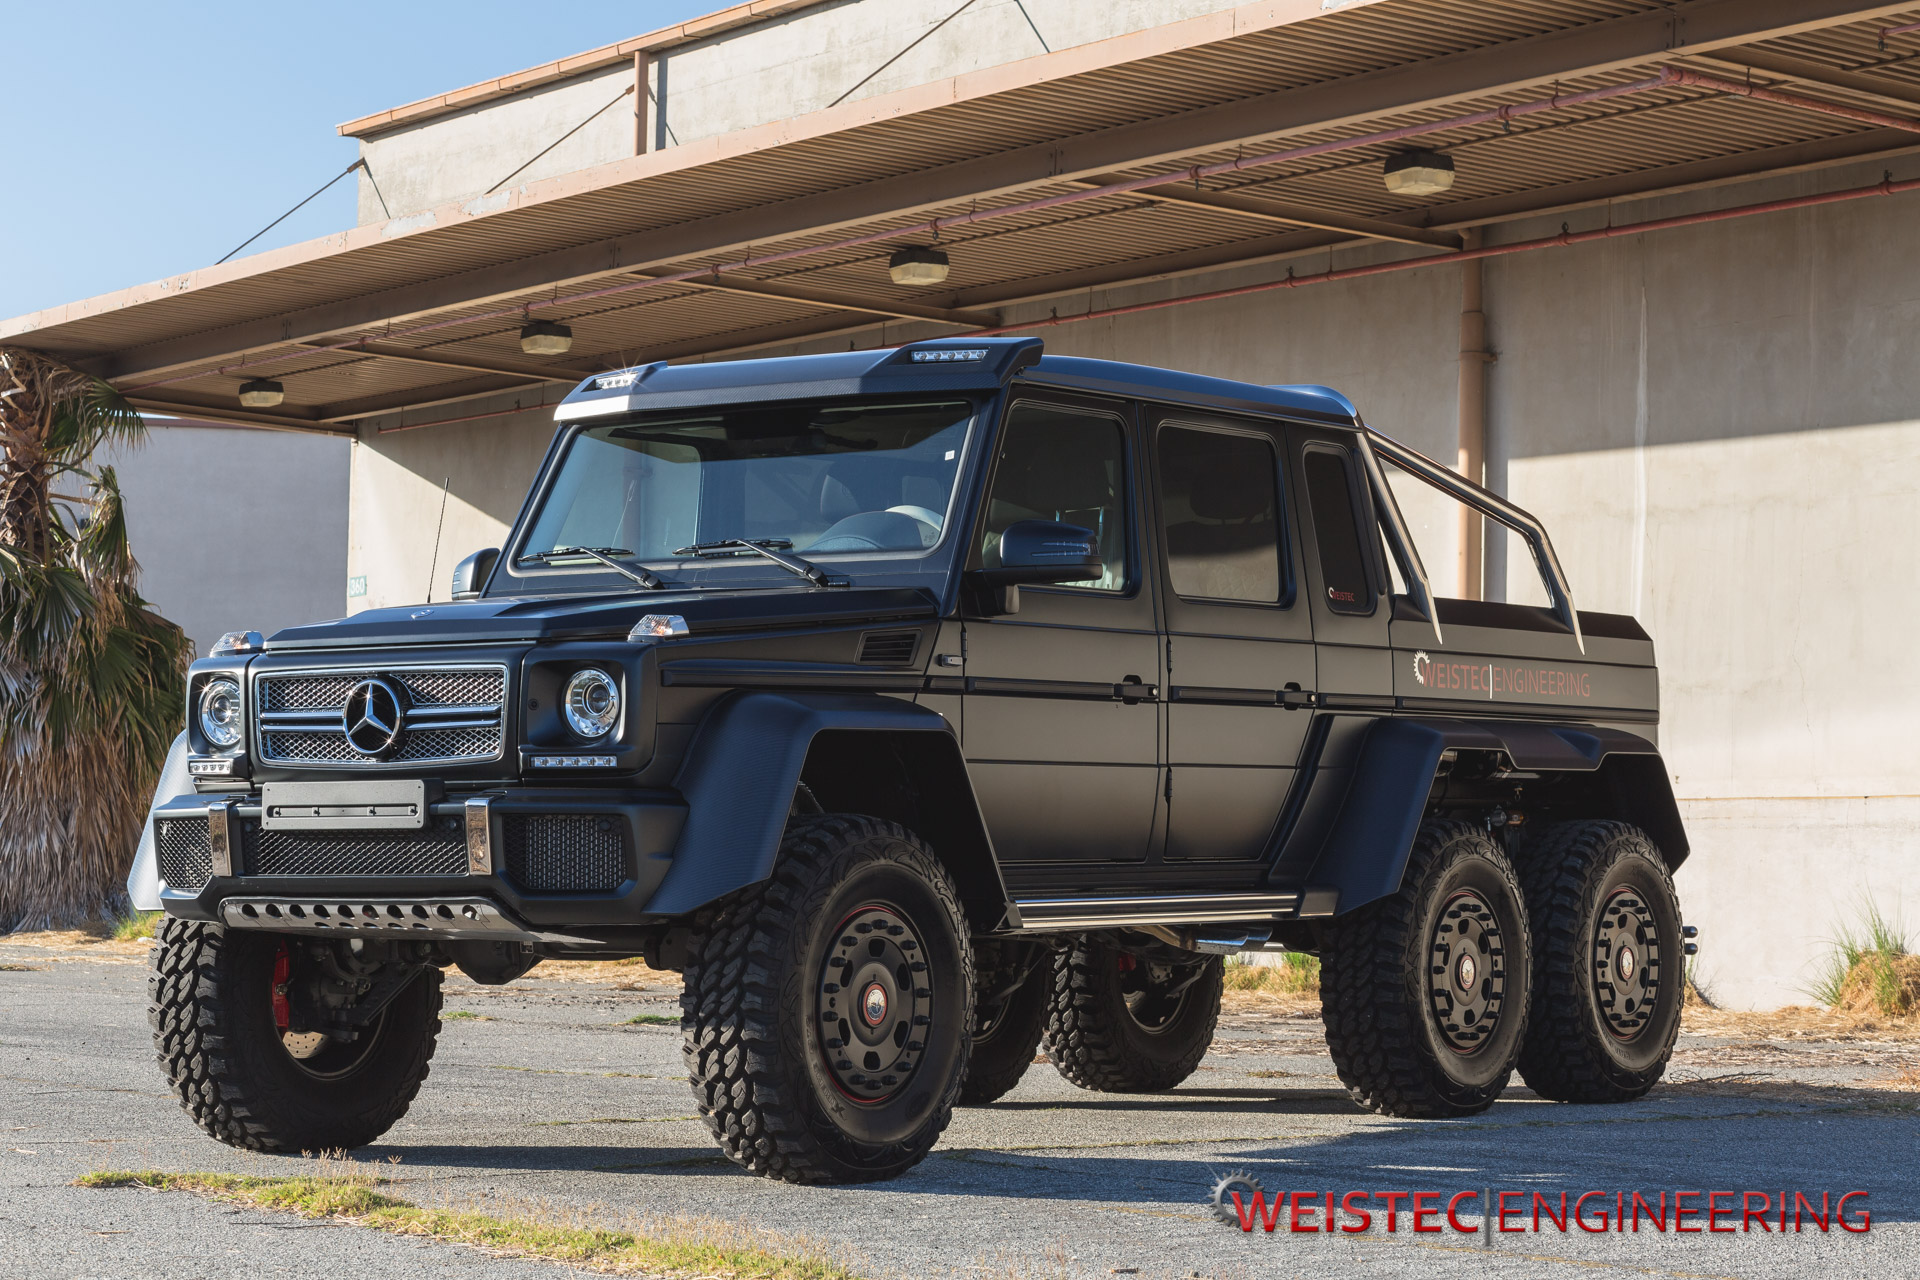 Weistec engineering mercedes benz g63 amg 6x6 in detail for Mercedes benz g63 6x6 for sale